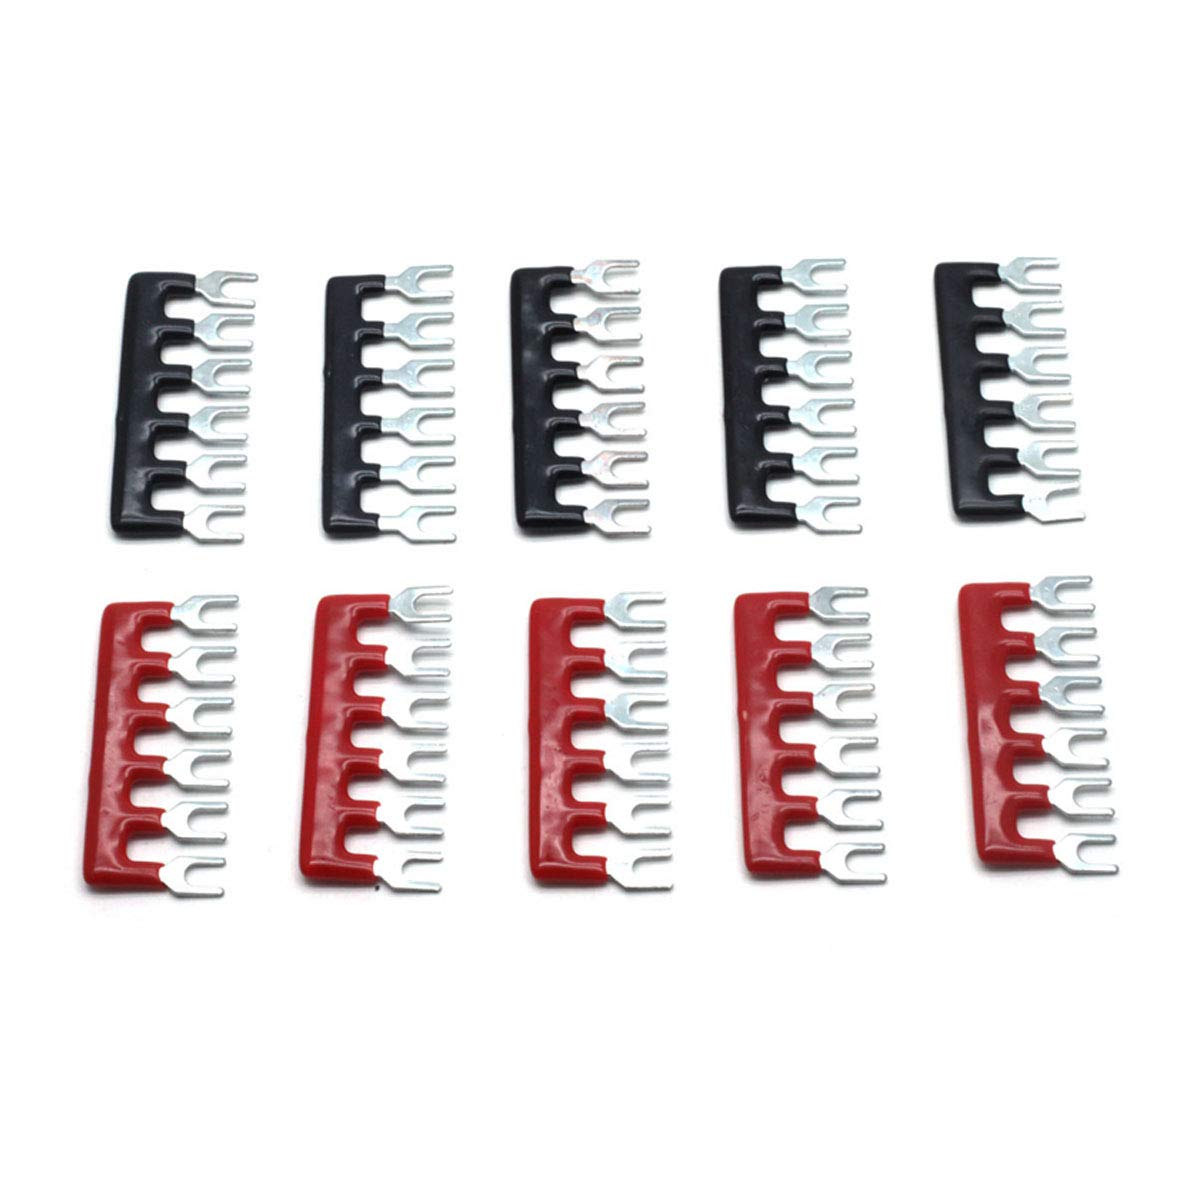 Dasunny 5 Packs Screw Terminal Block 600V 15A Double Row 6 Positions /& 10 Packs 400V 15A 6 Positions Pre Insulated Terminal Barrier Strip Red//Black